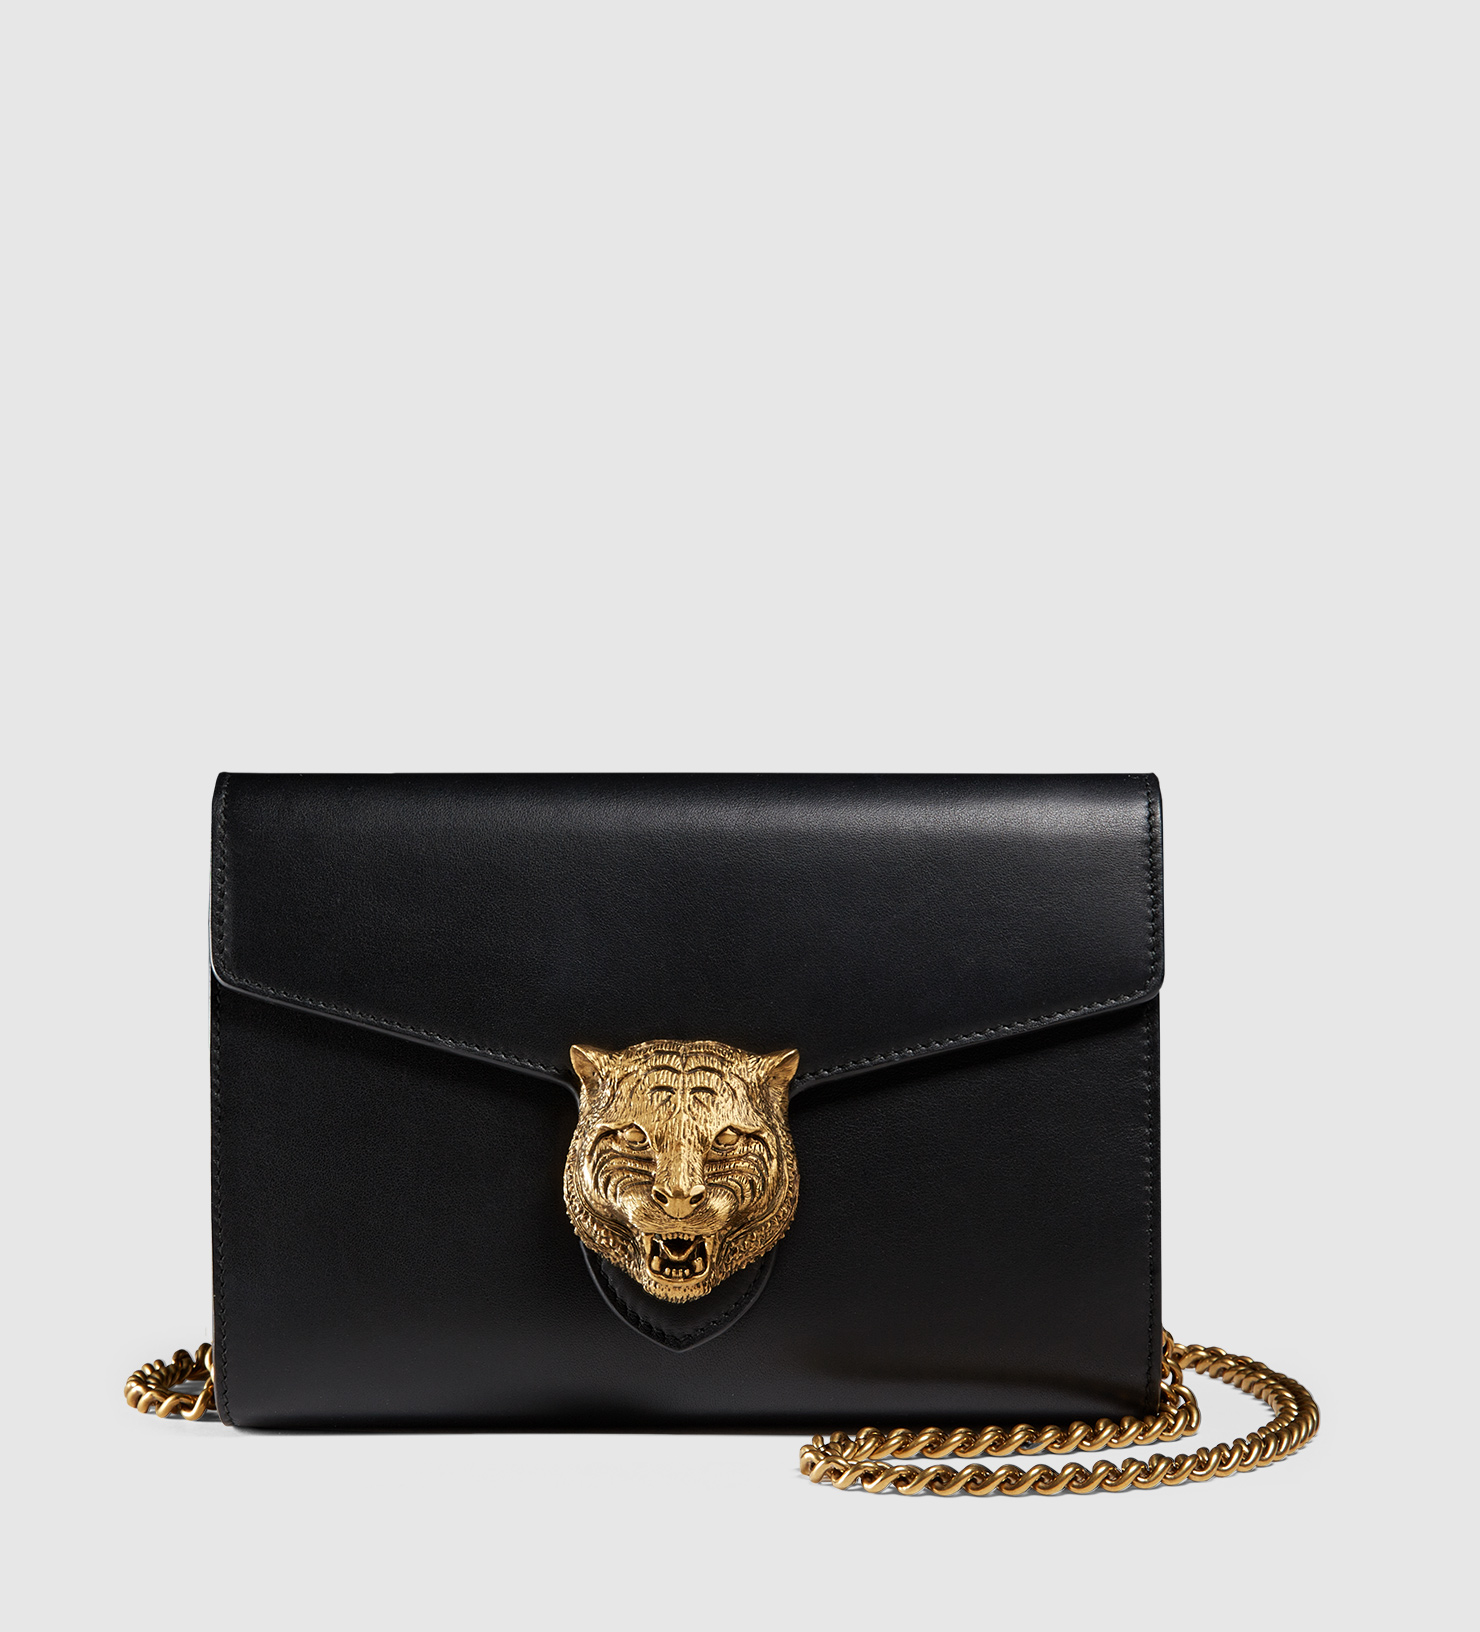 a40f4bb24455 Gucci Animalier Leather Chain Wallet in Black - Lyst